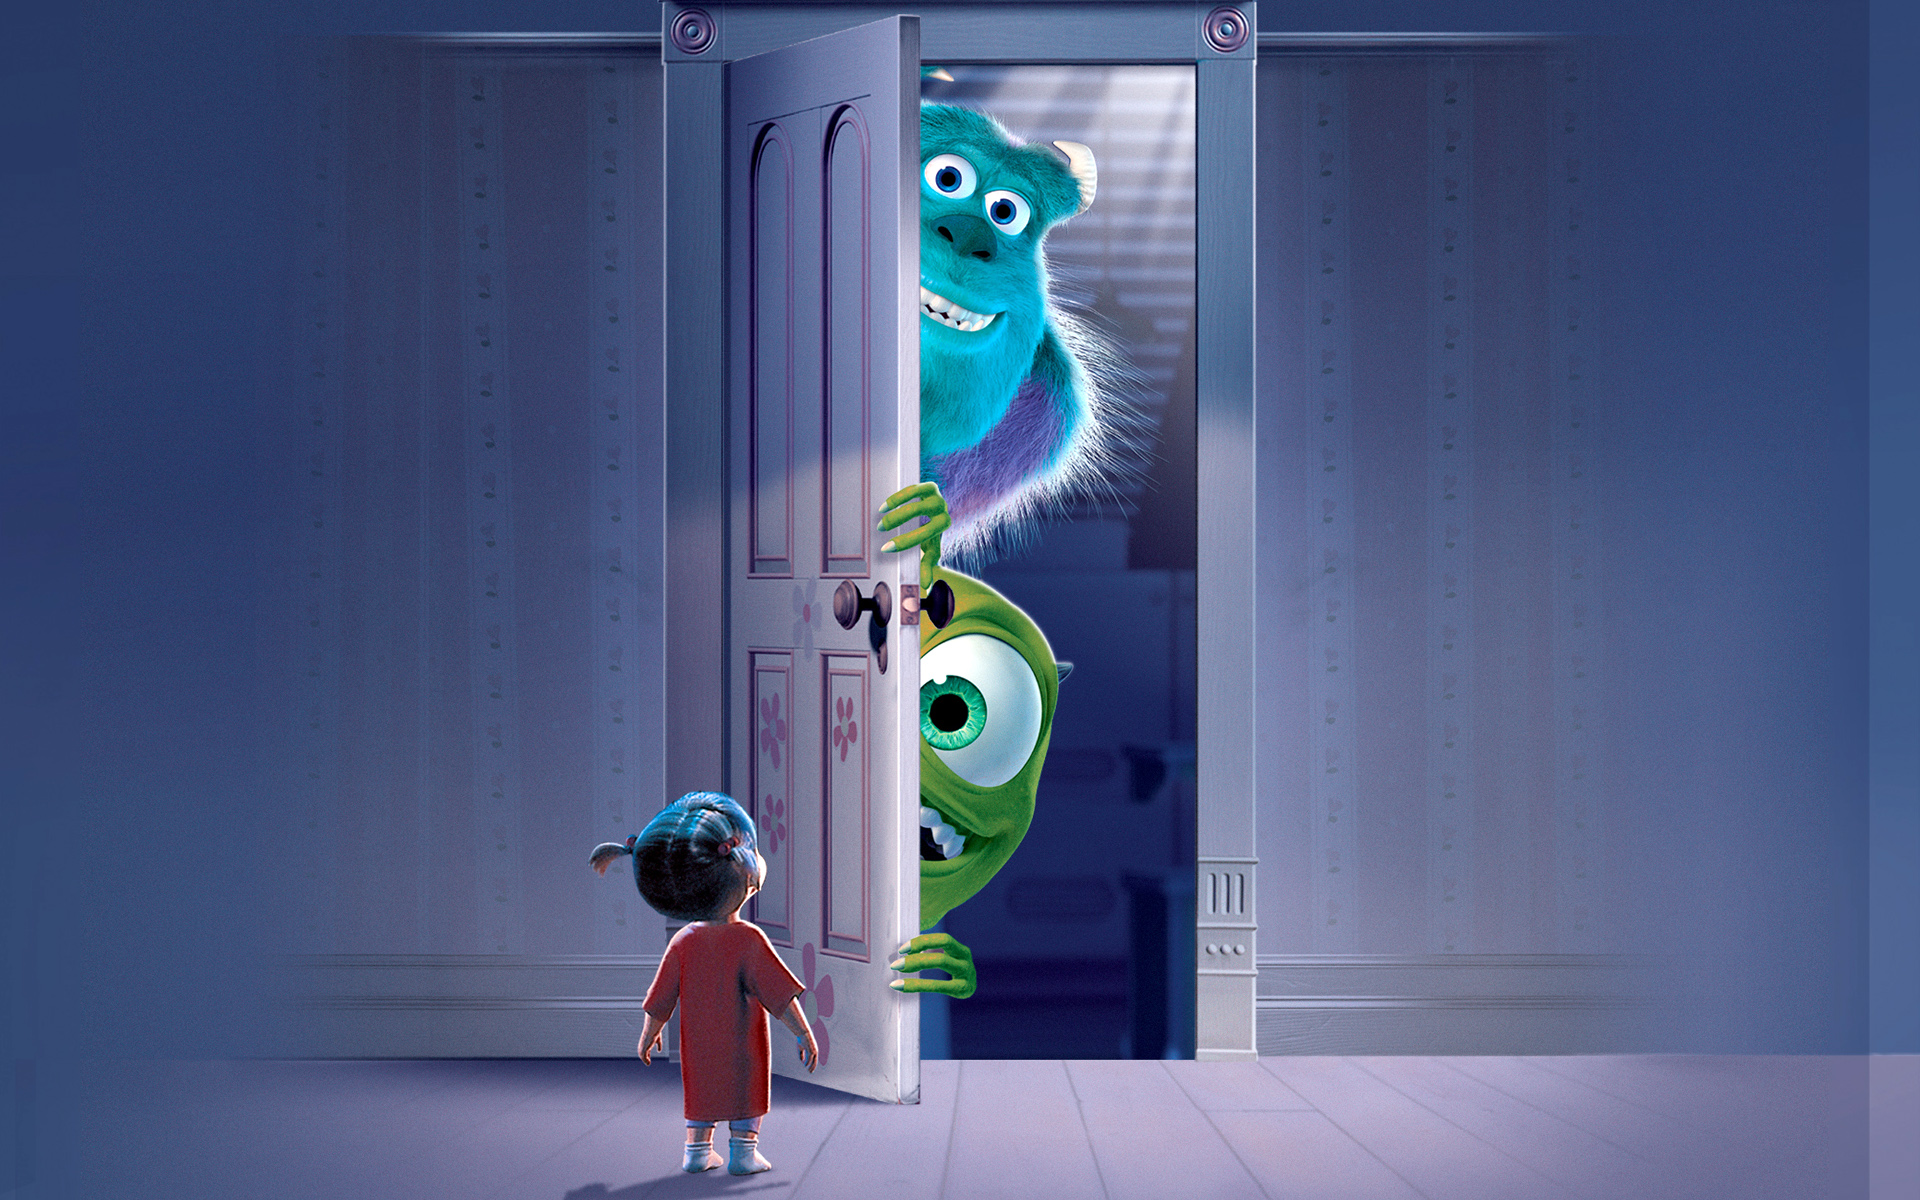 Wallpaper iphone monster university - Monsters Inc Movie